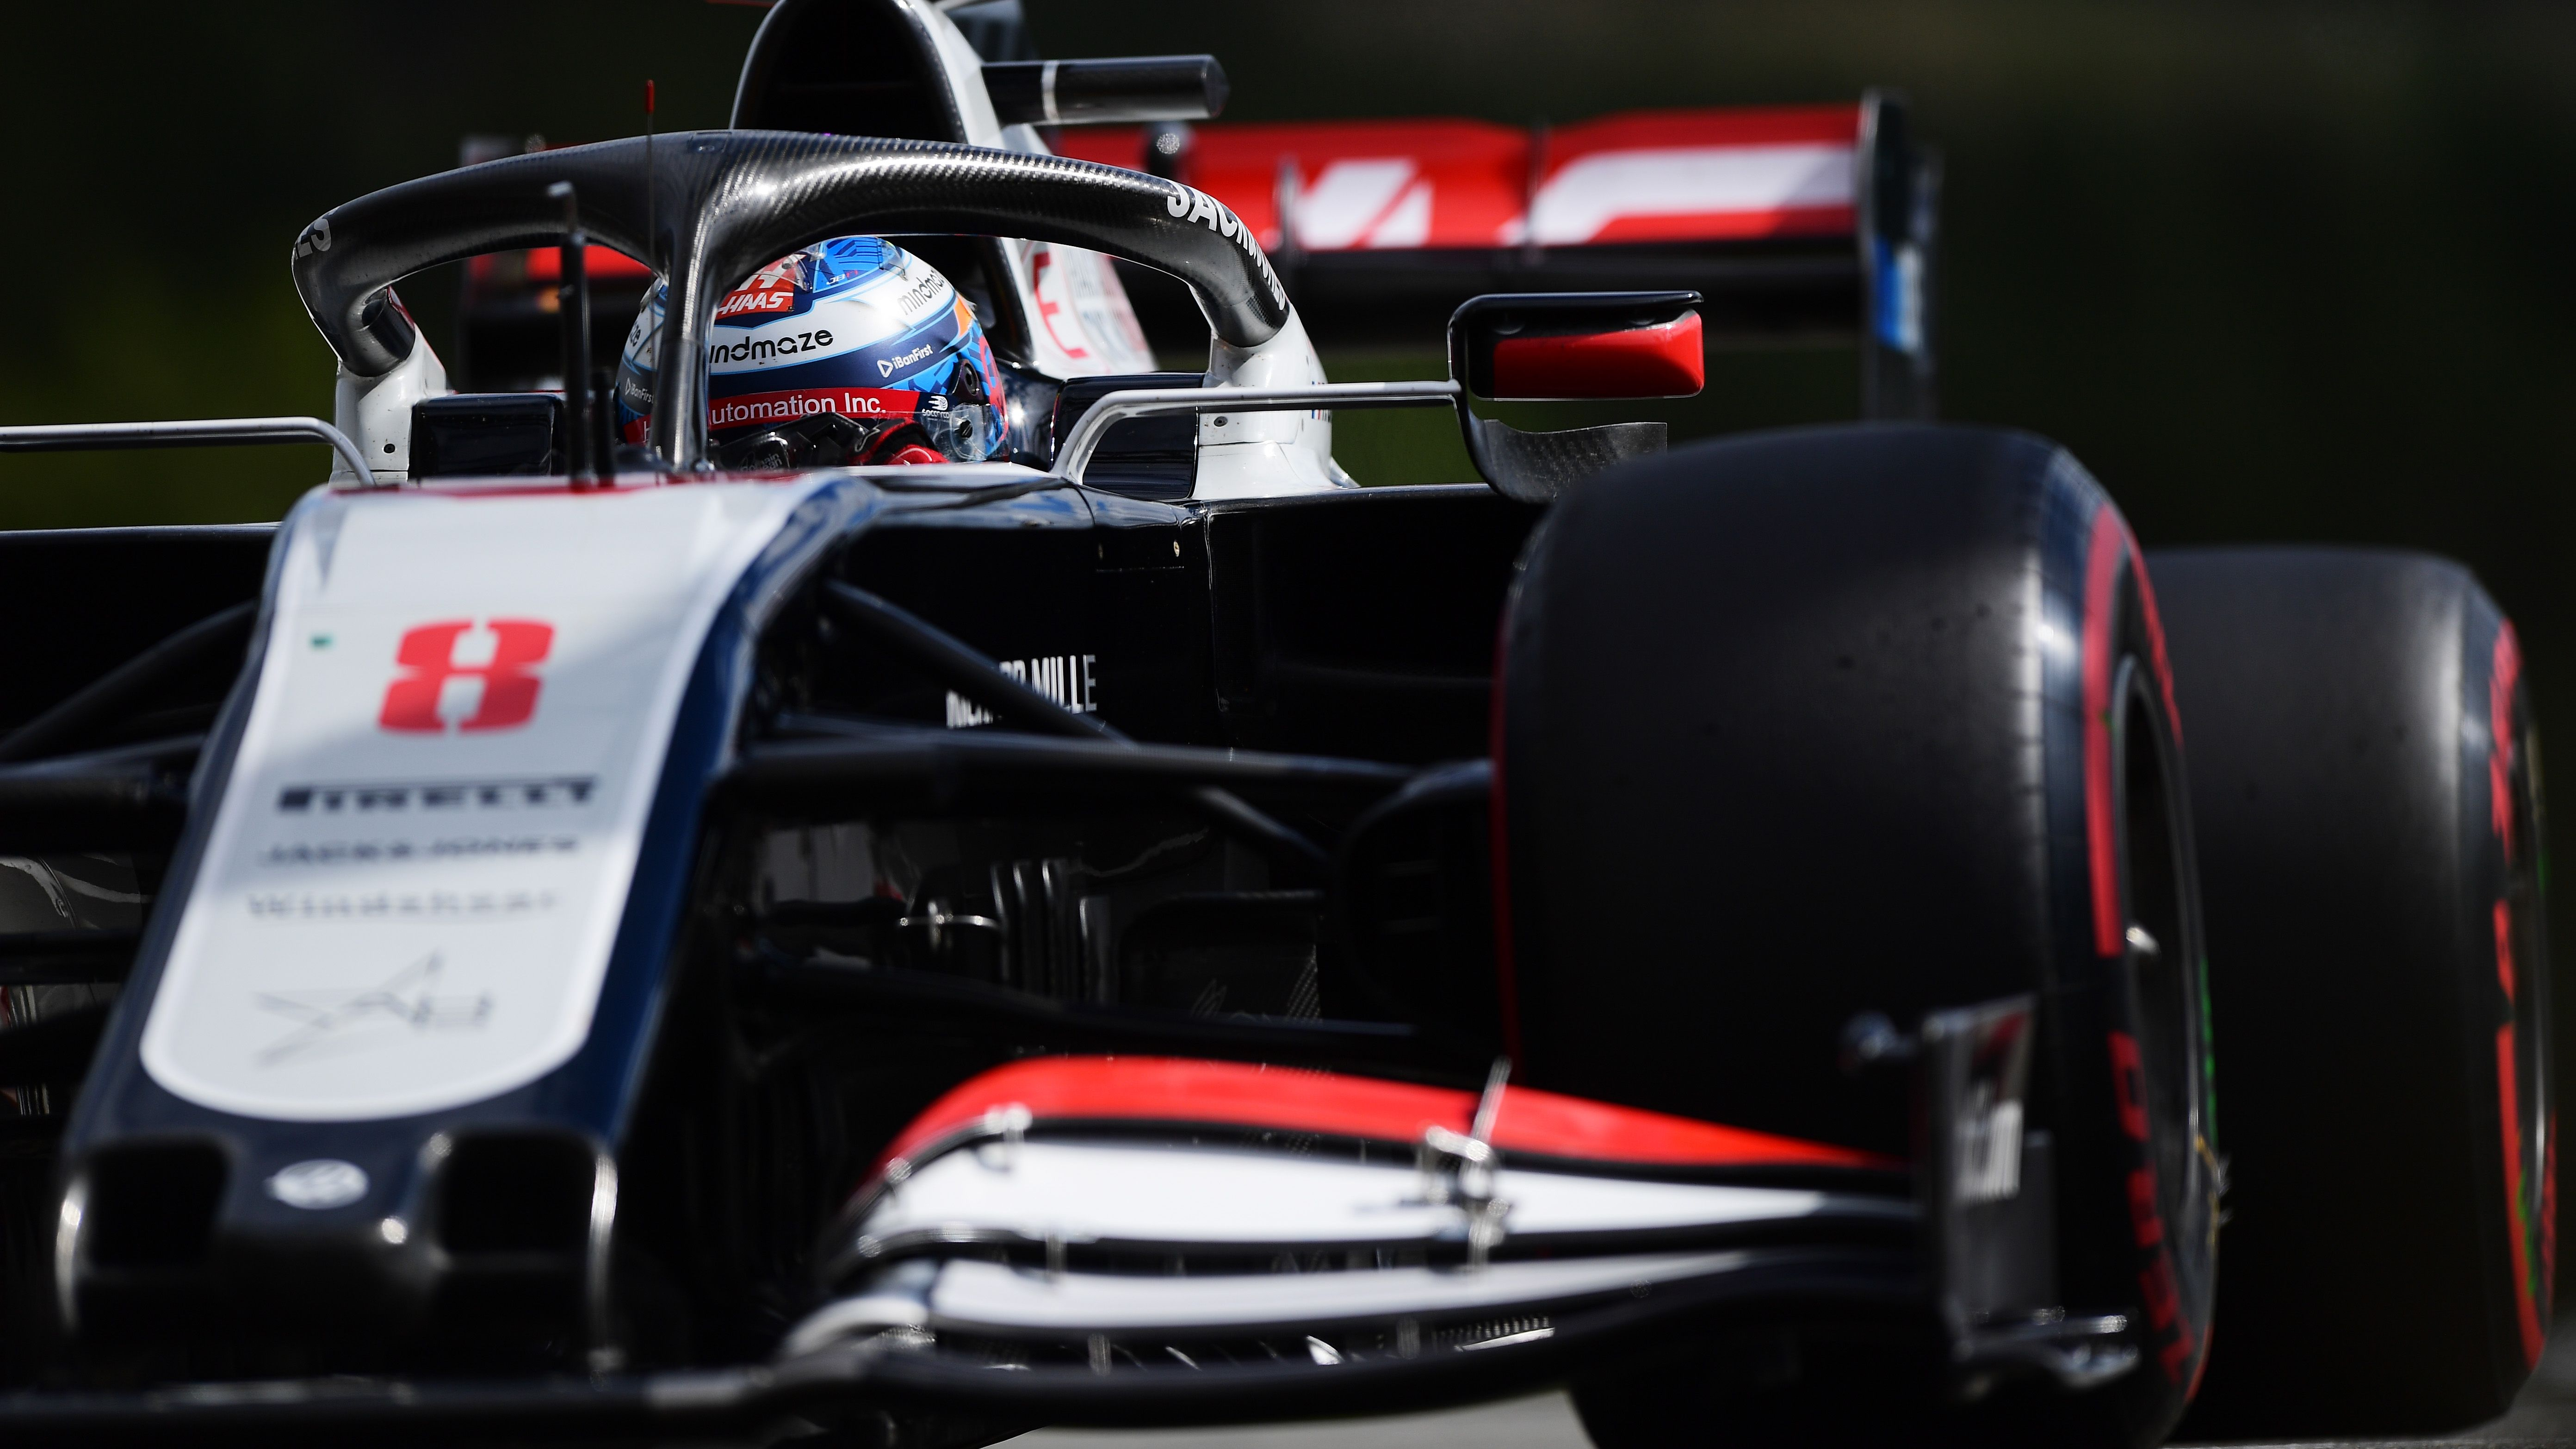 Ferrari S Engine Woes Add To Haas F1 Team S Frustration